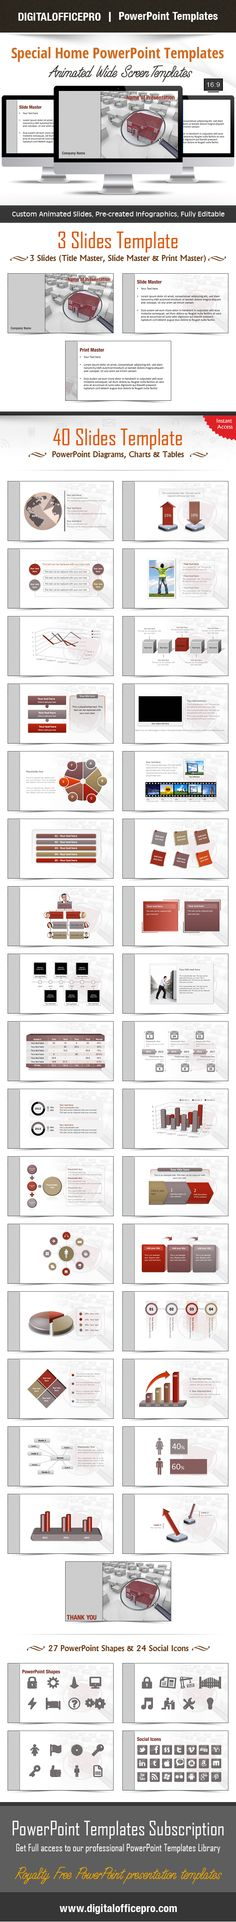 Impress and Engage your audience with Special Home PowerPoint Template and Special Home PowerPoint Backgrounds from DigitalOfficePro. Each template comes with a set of PowerPoint Diagrams, Charts & Shapes and are available for instant download.